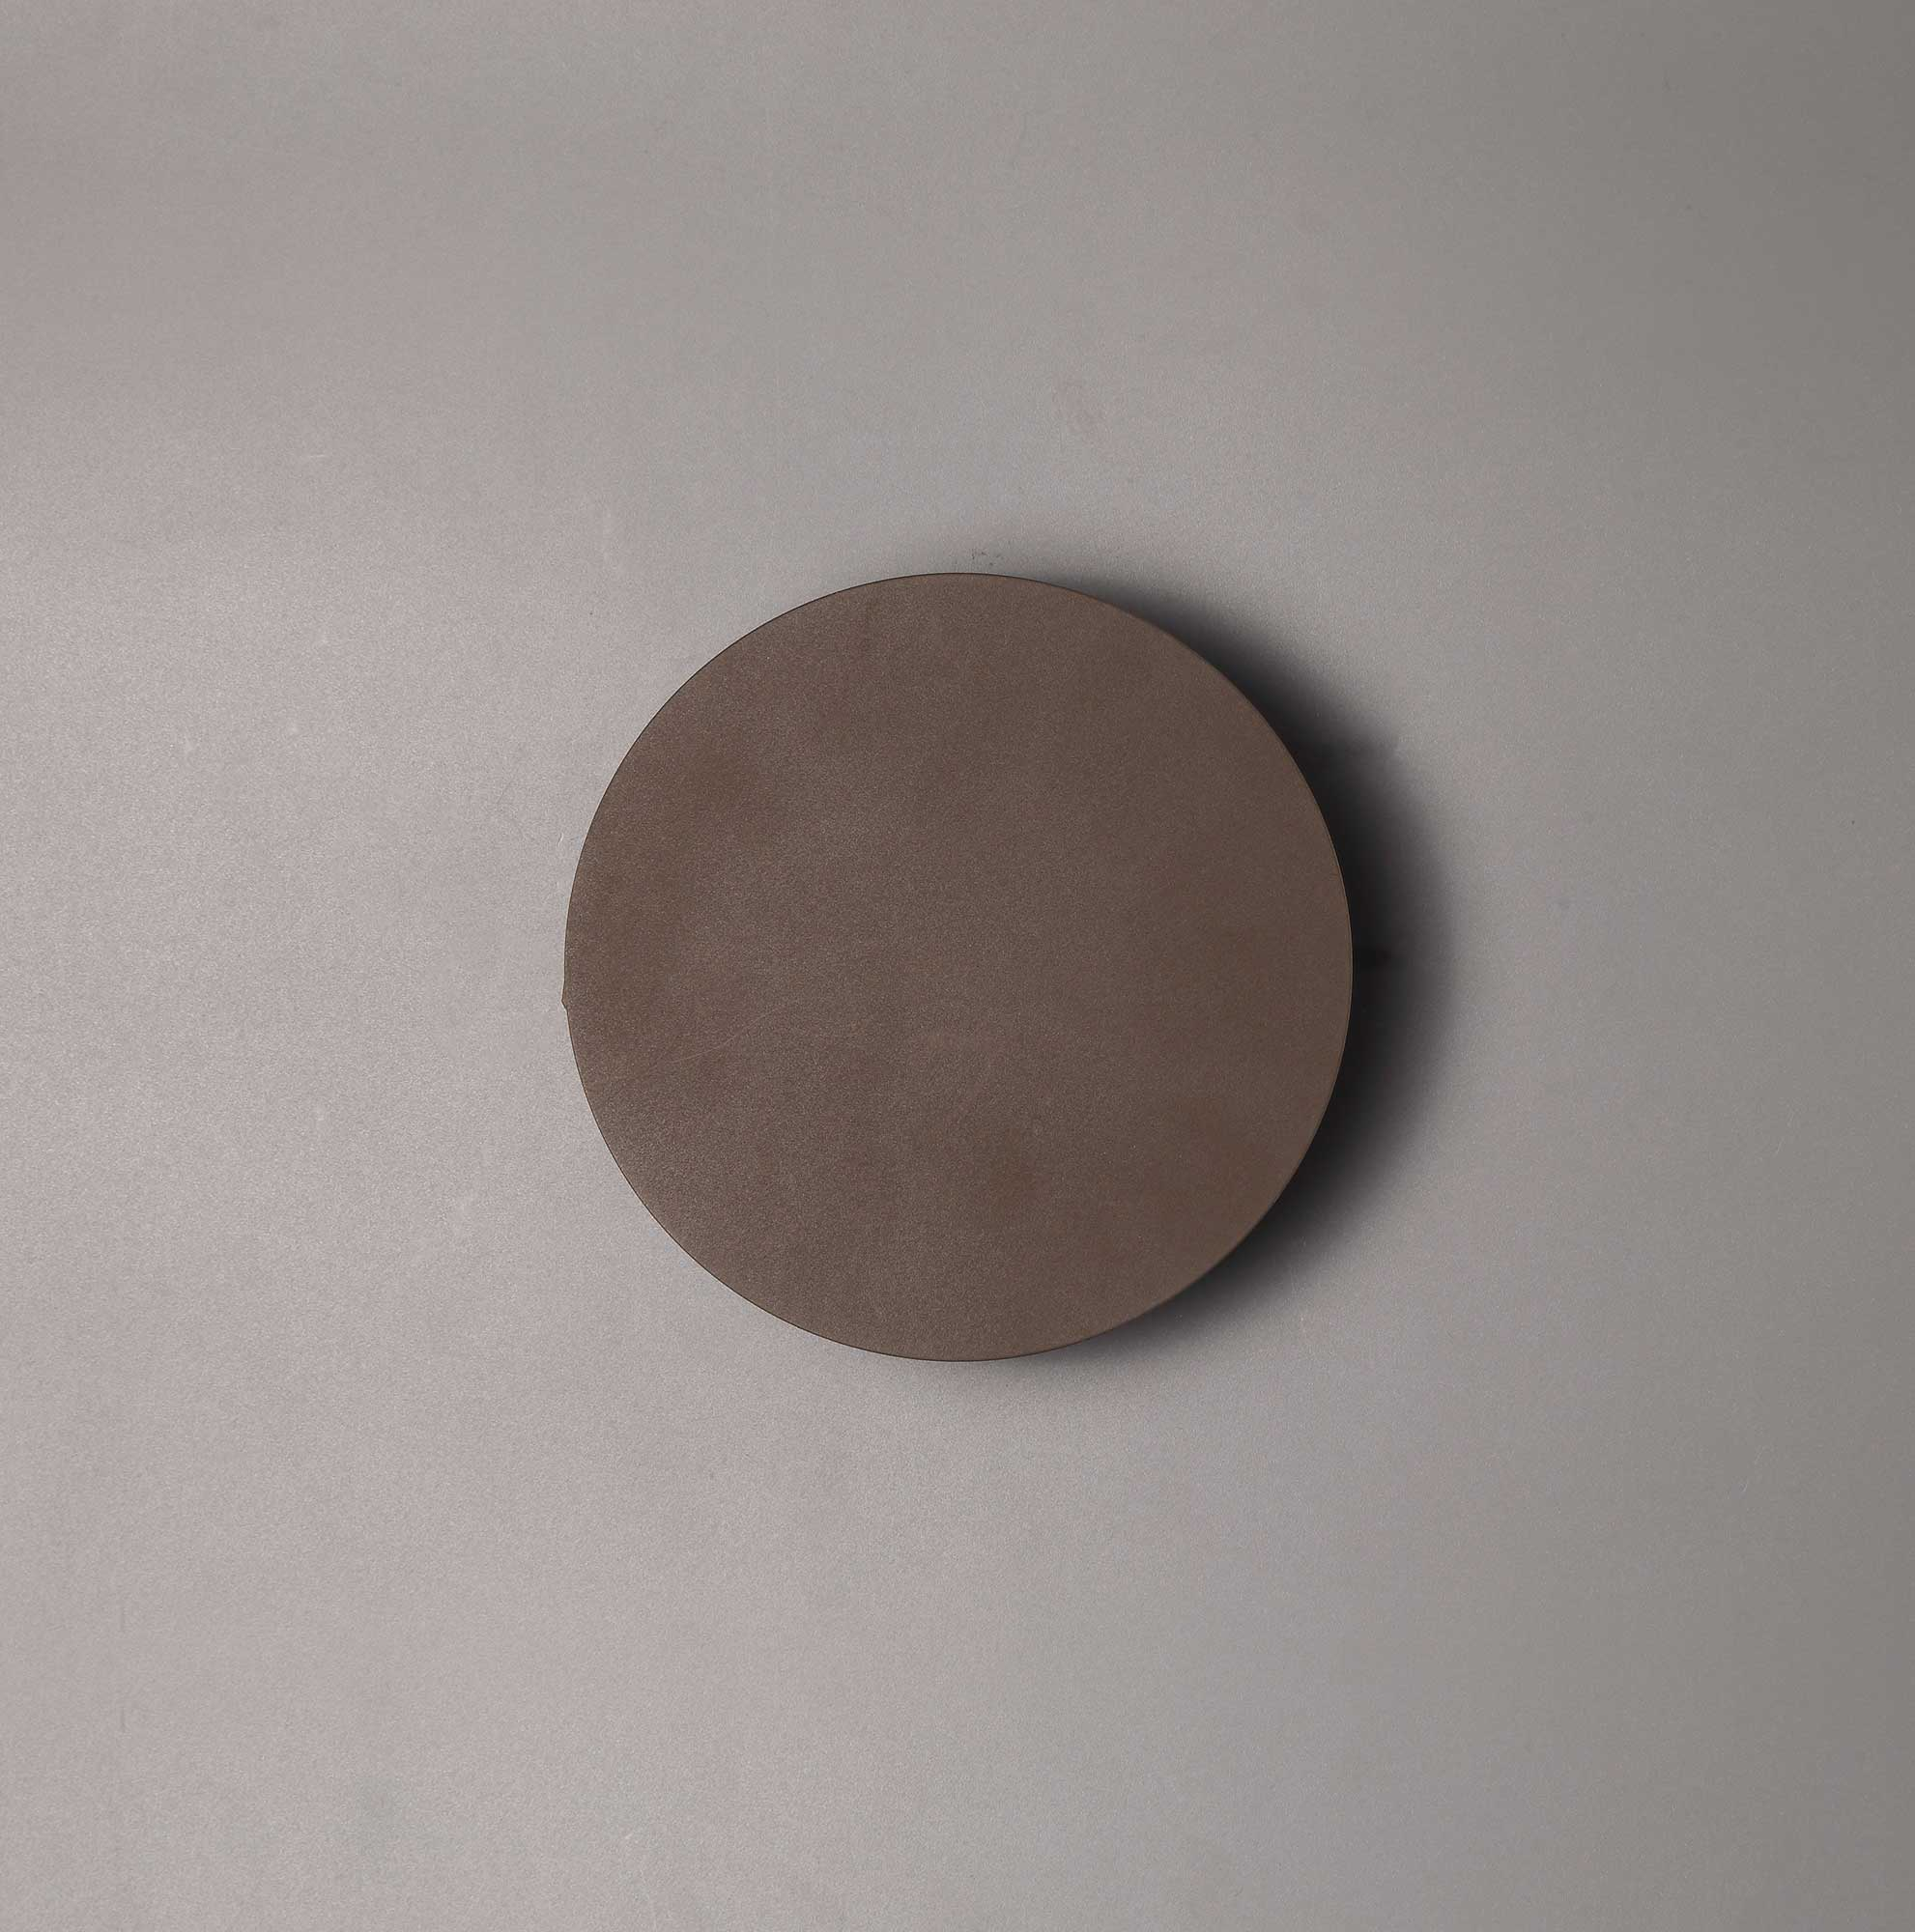 Magnetic Base Wall Lamp, 12W LED 3000K 498lm, 15cm Round